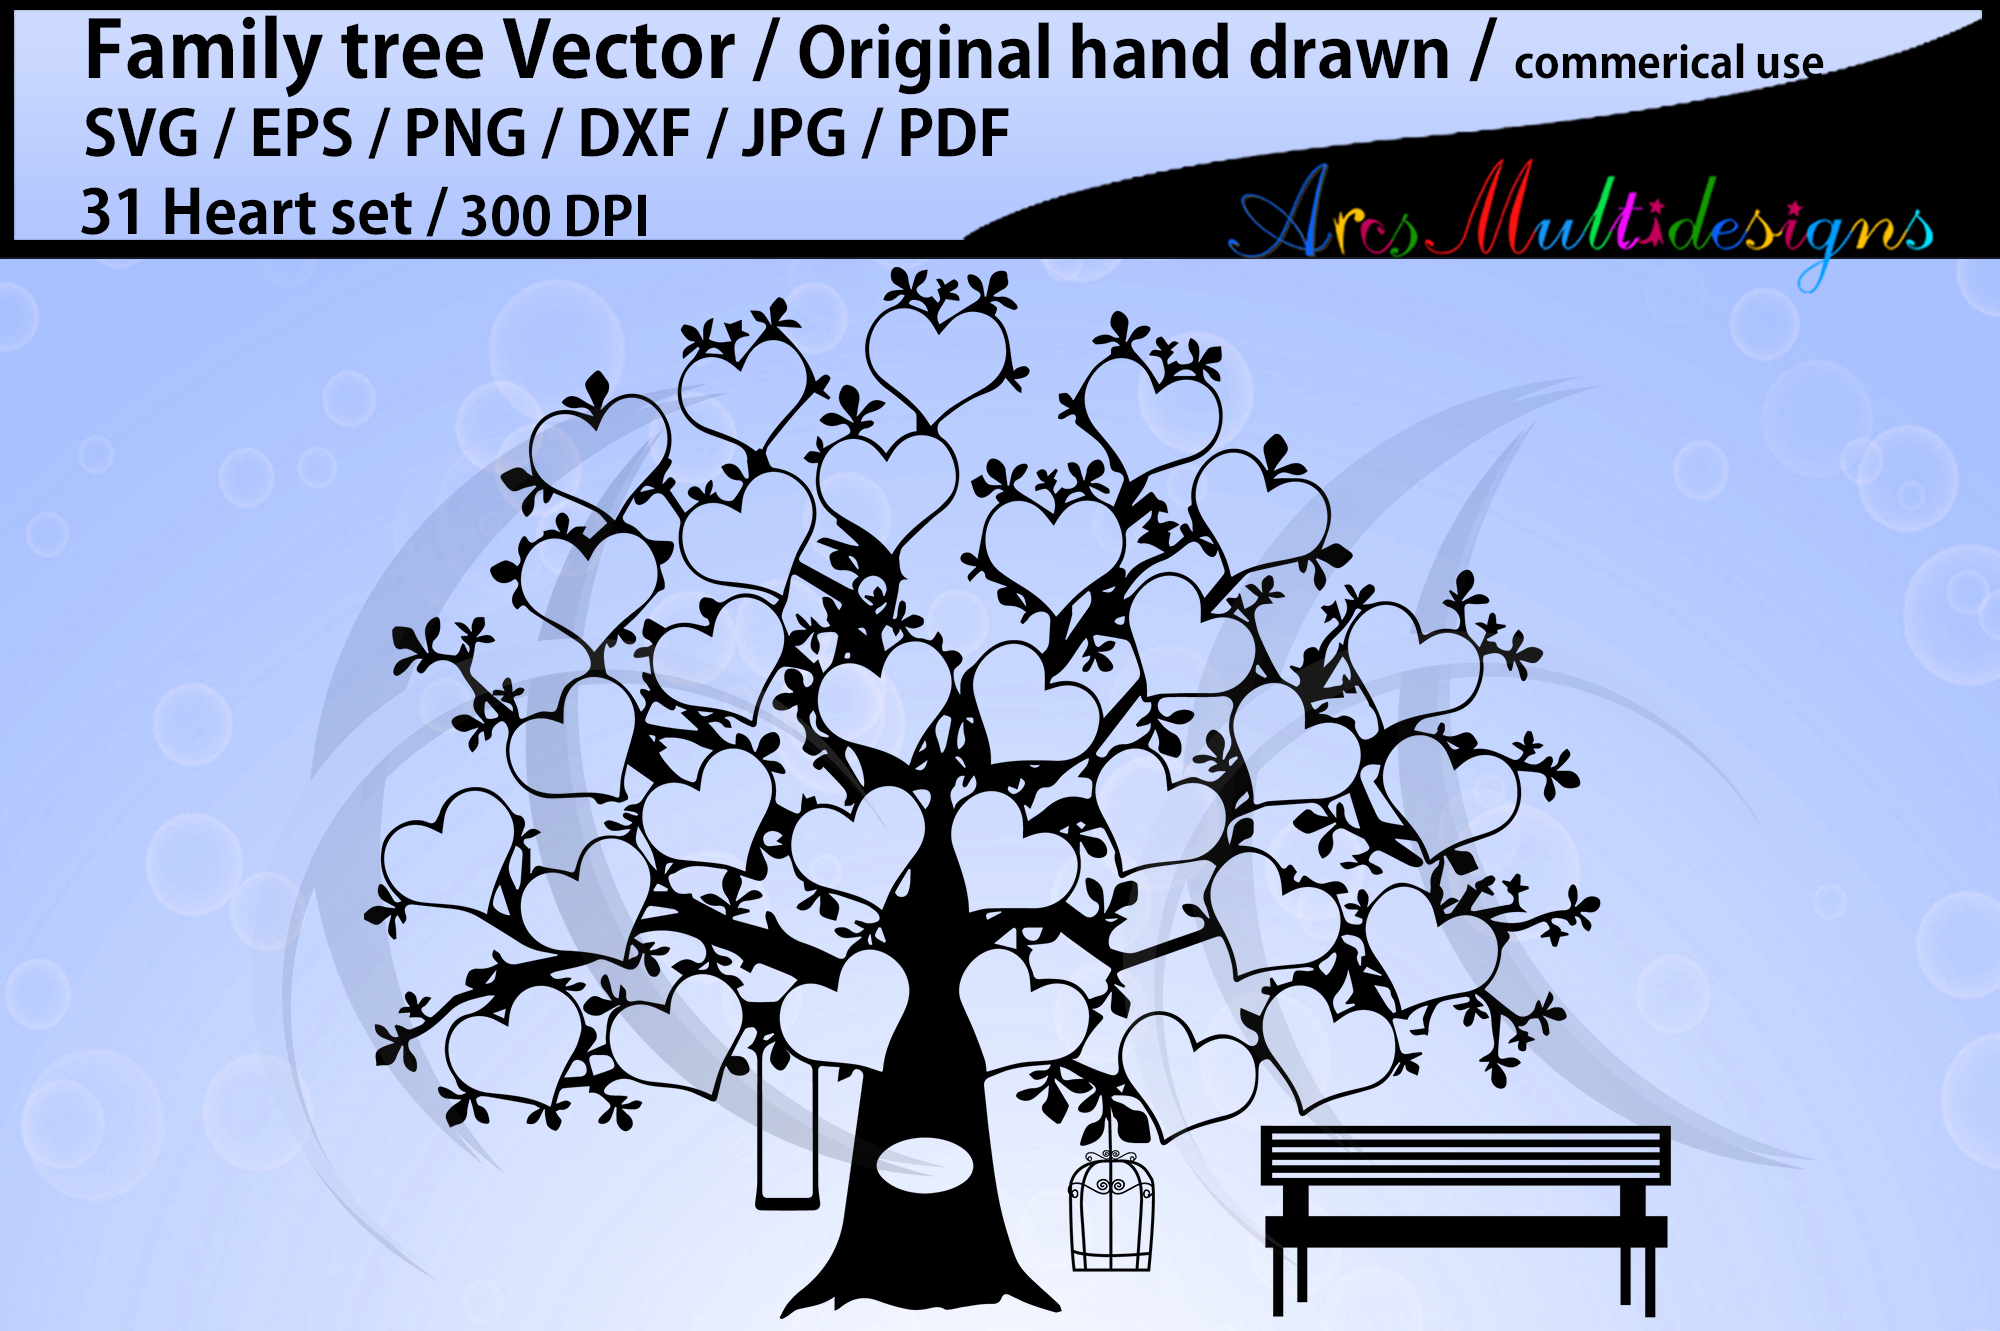 31 hearts family tree vector / SVG, EPS, Dxf, Png, Pdf, Jpg example image 1